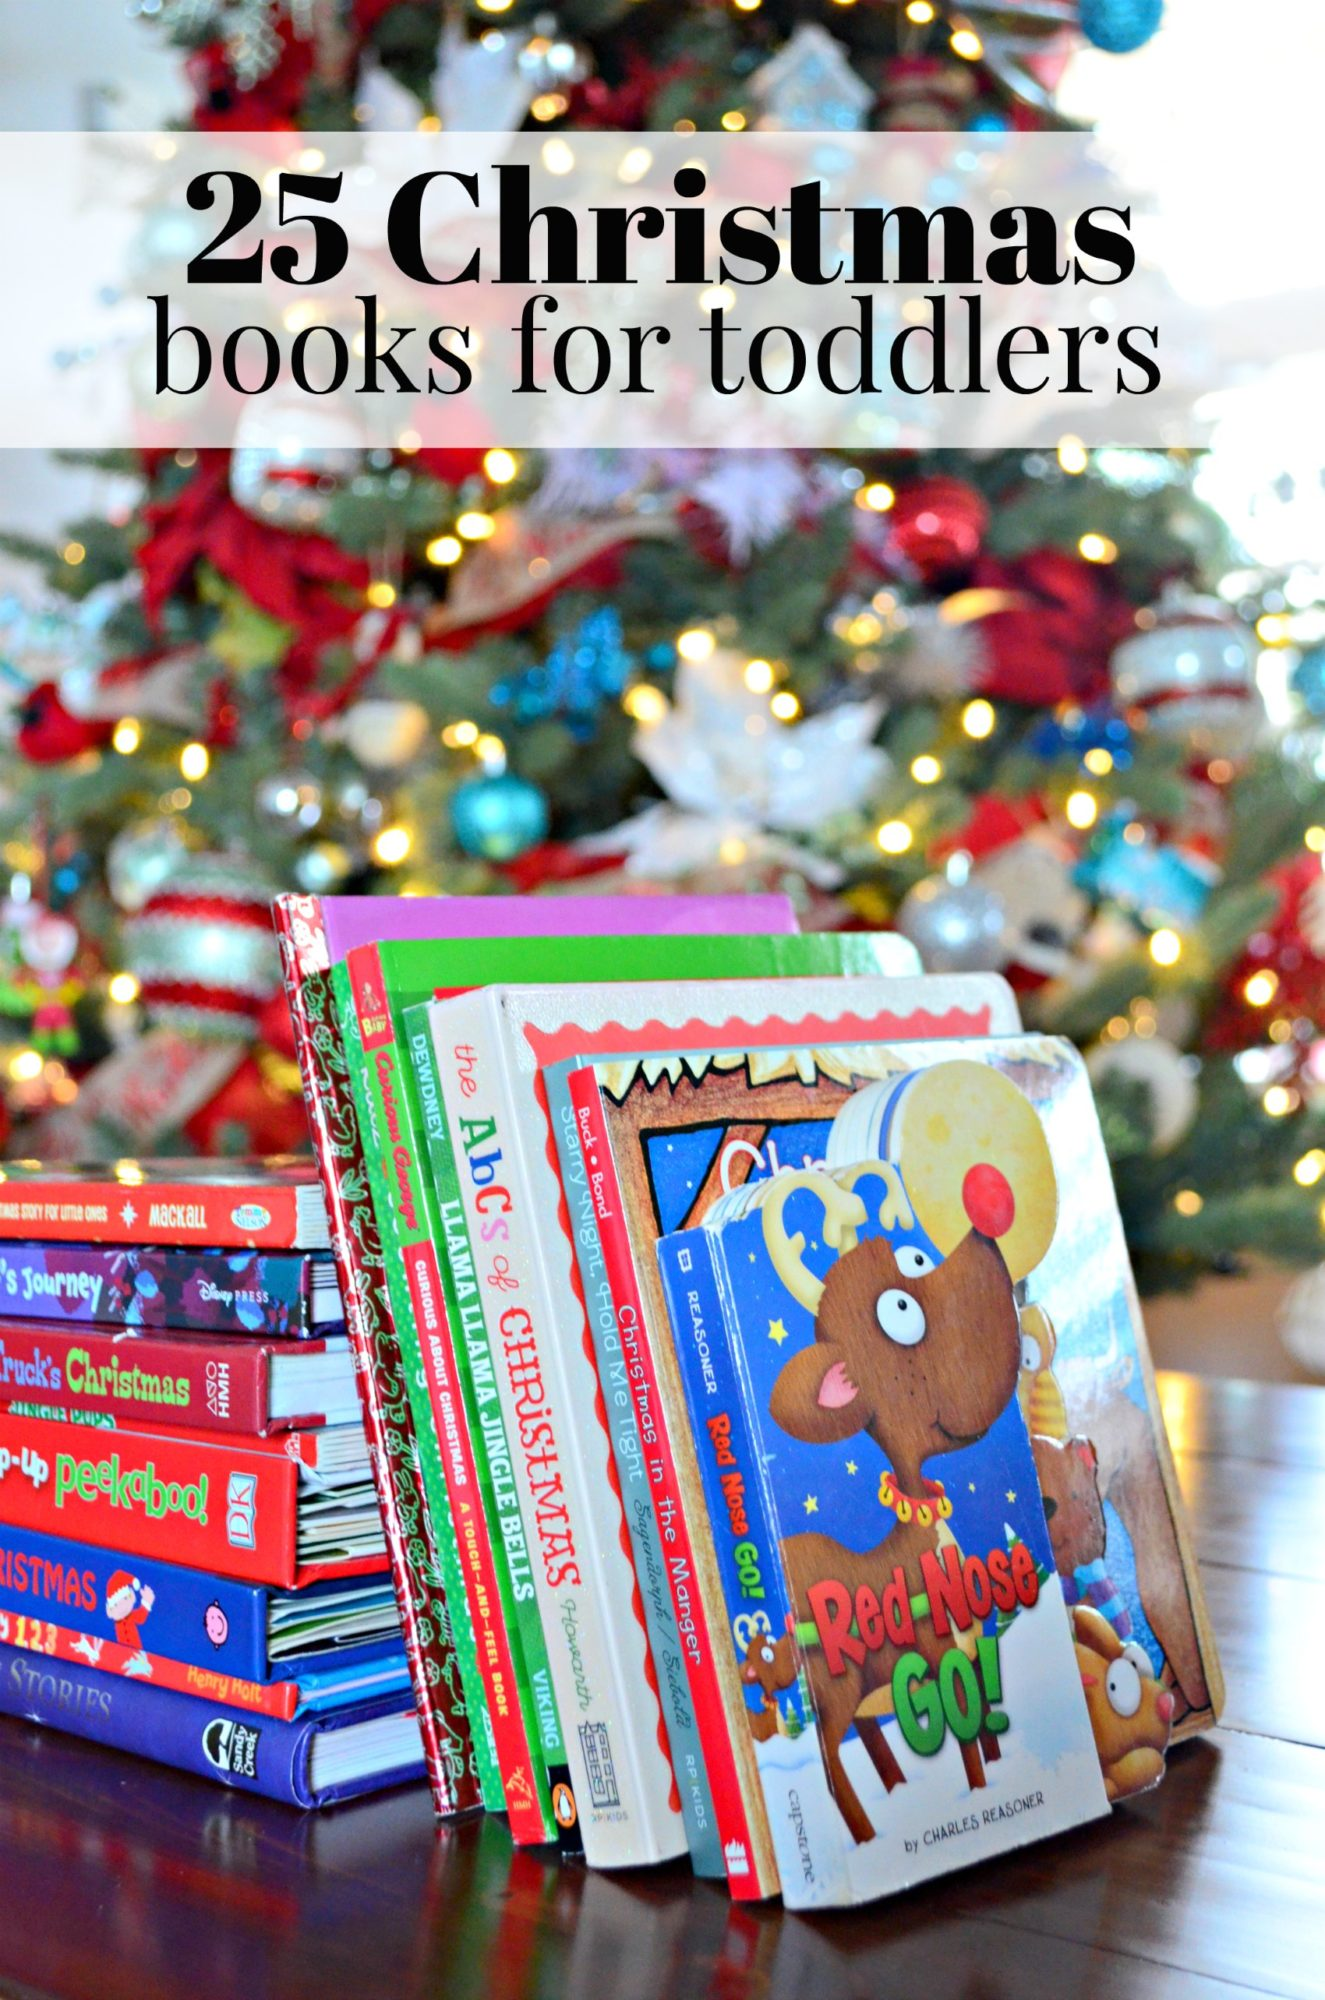 25 christmas books for toddlers - Best Christmas Books